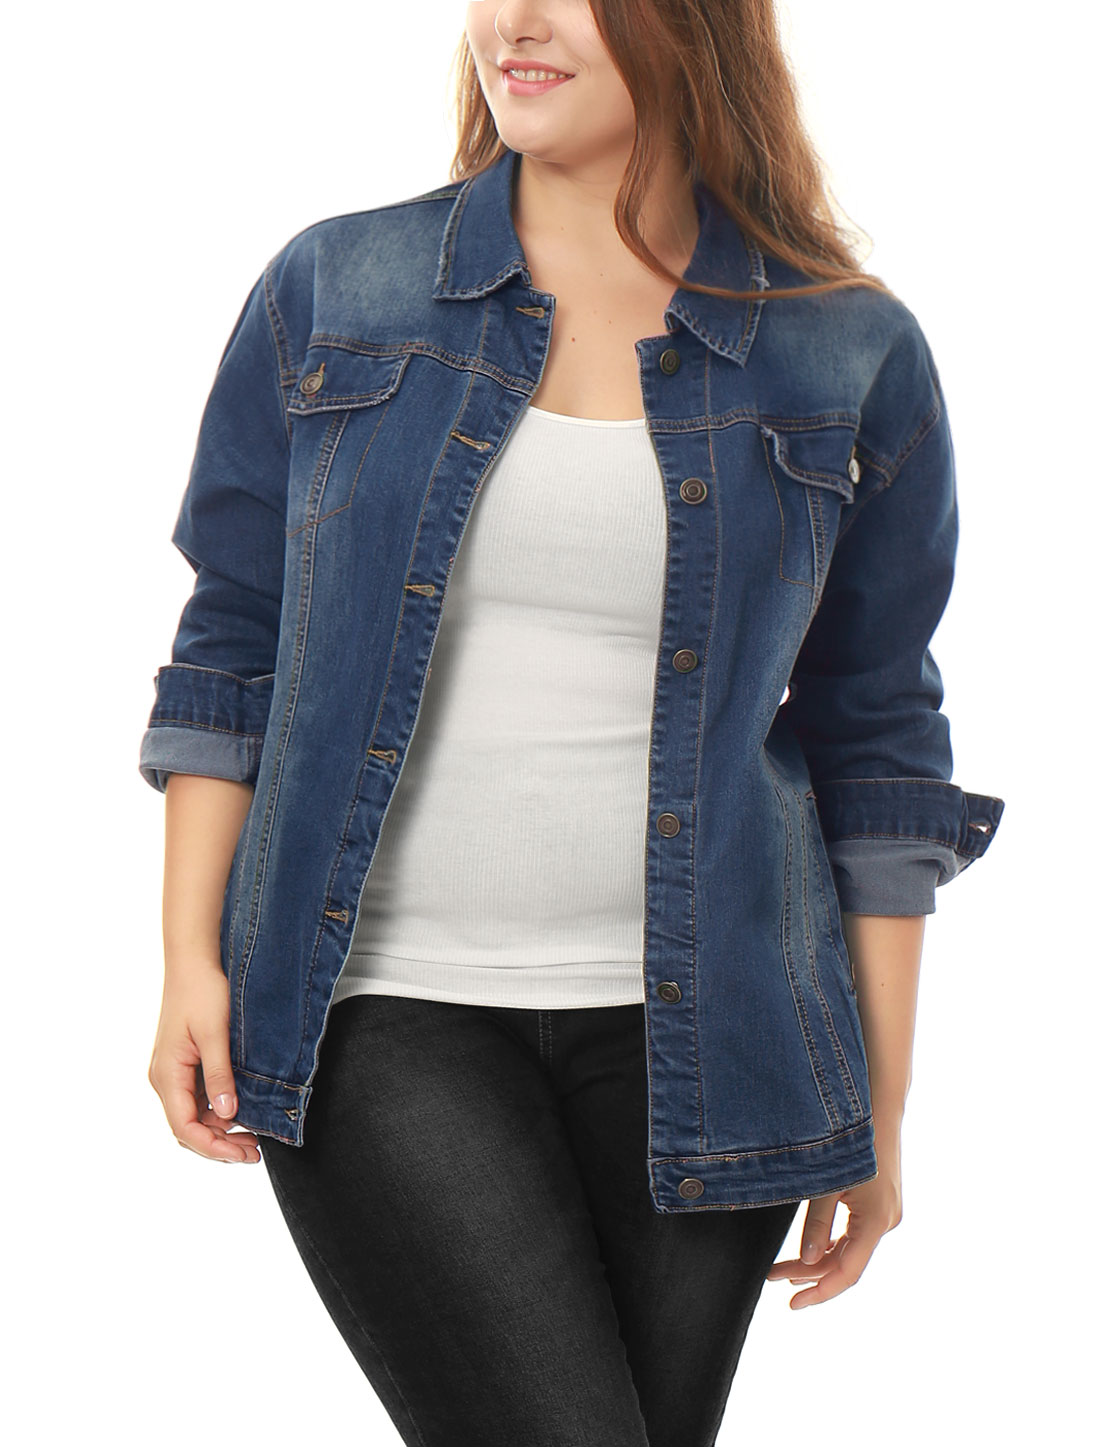 Women Plus Size Stitching Button Front Washed Denim Jacket Blue 3X